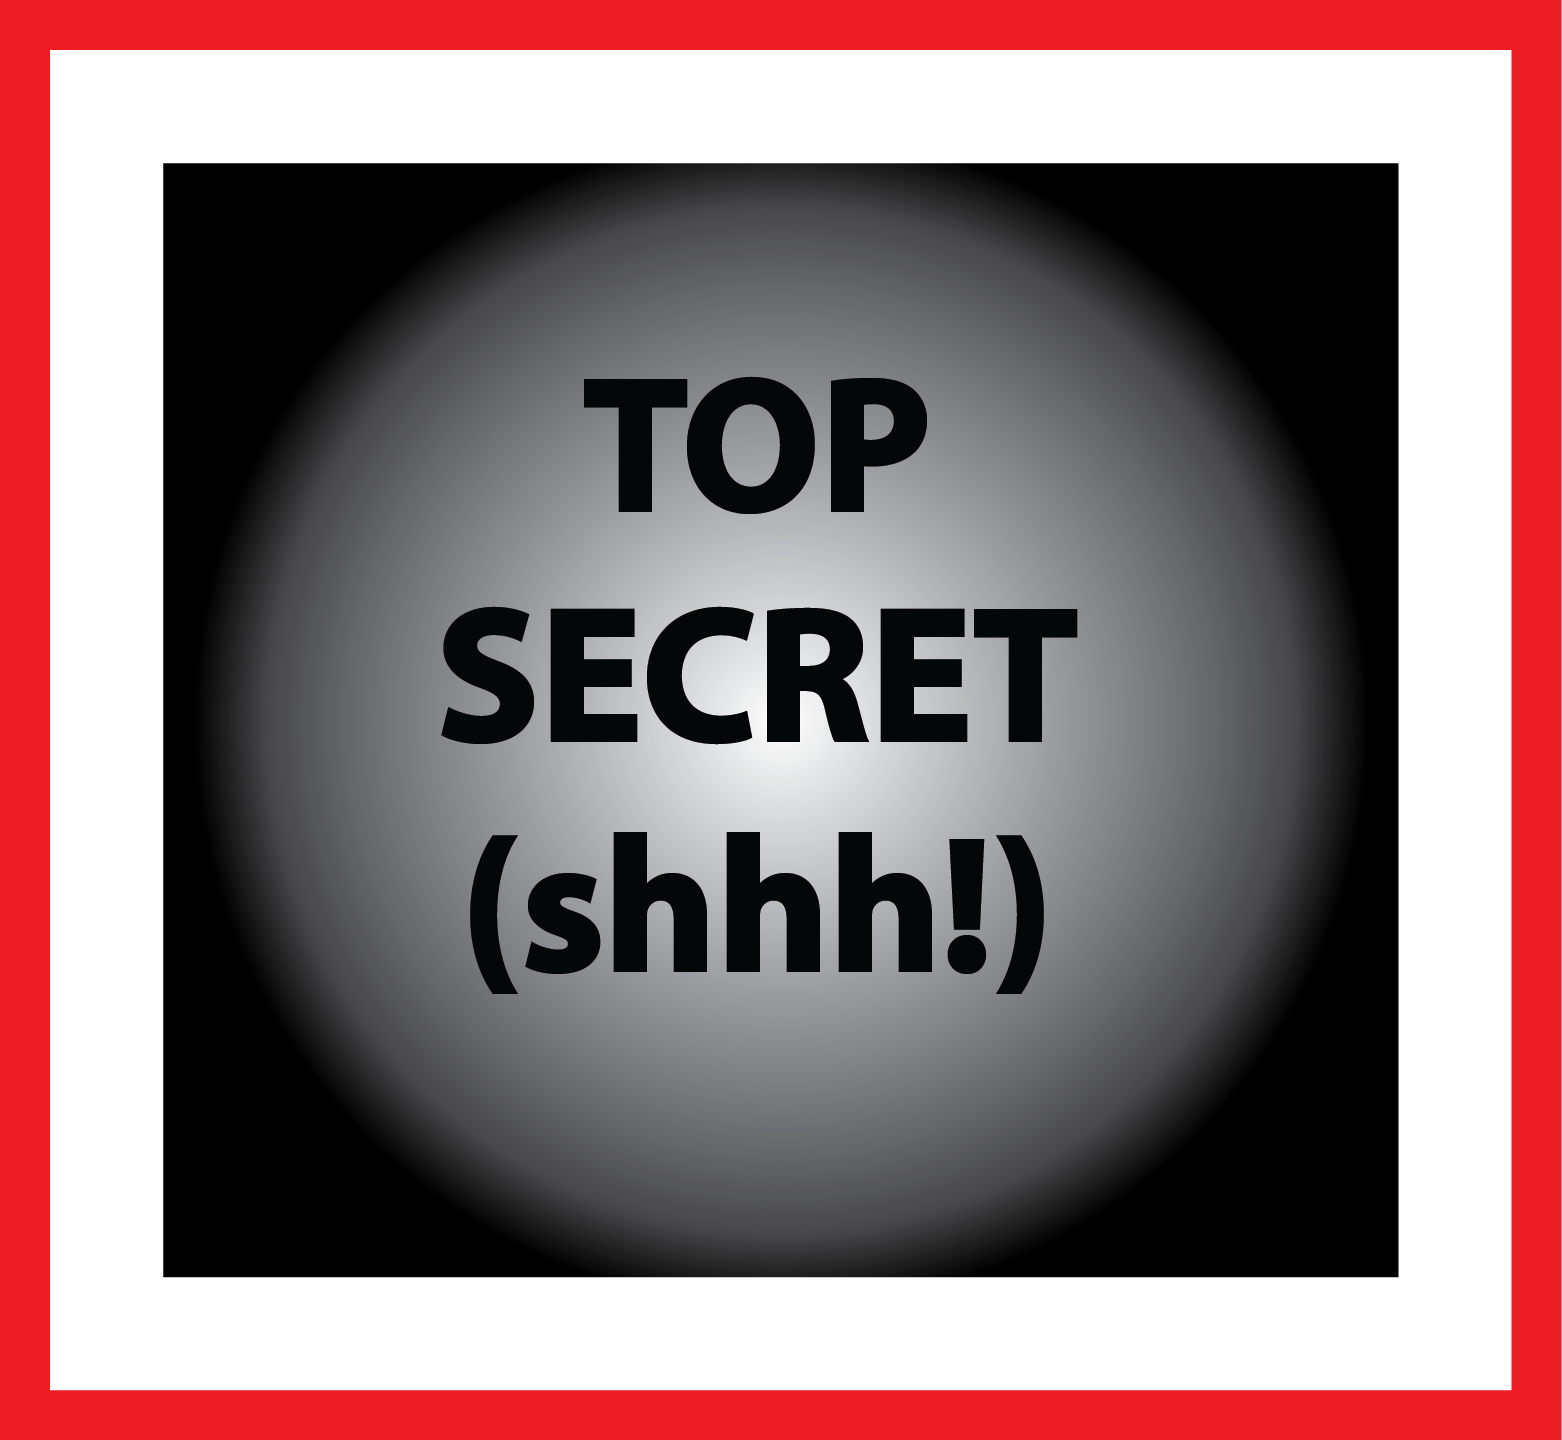 Top Secret Shh.png